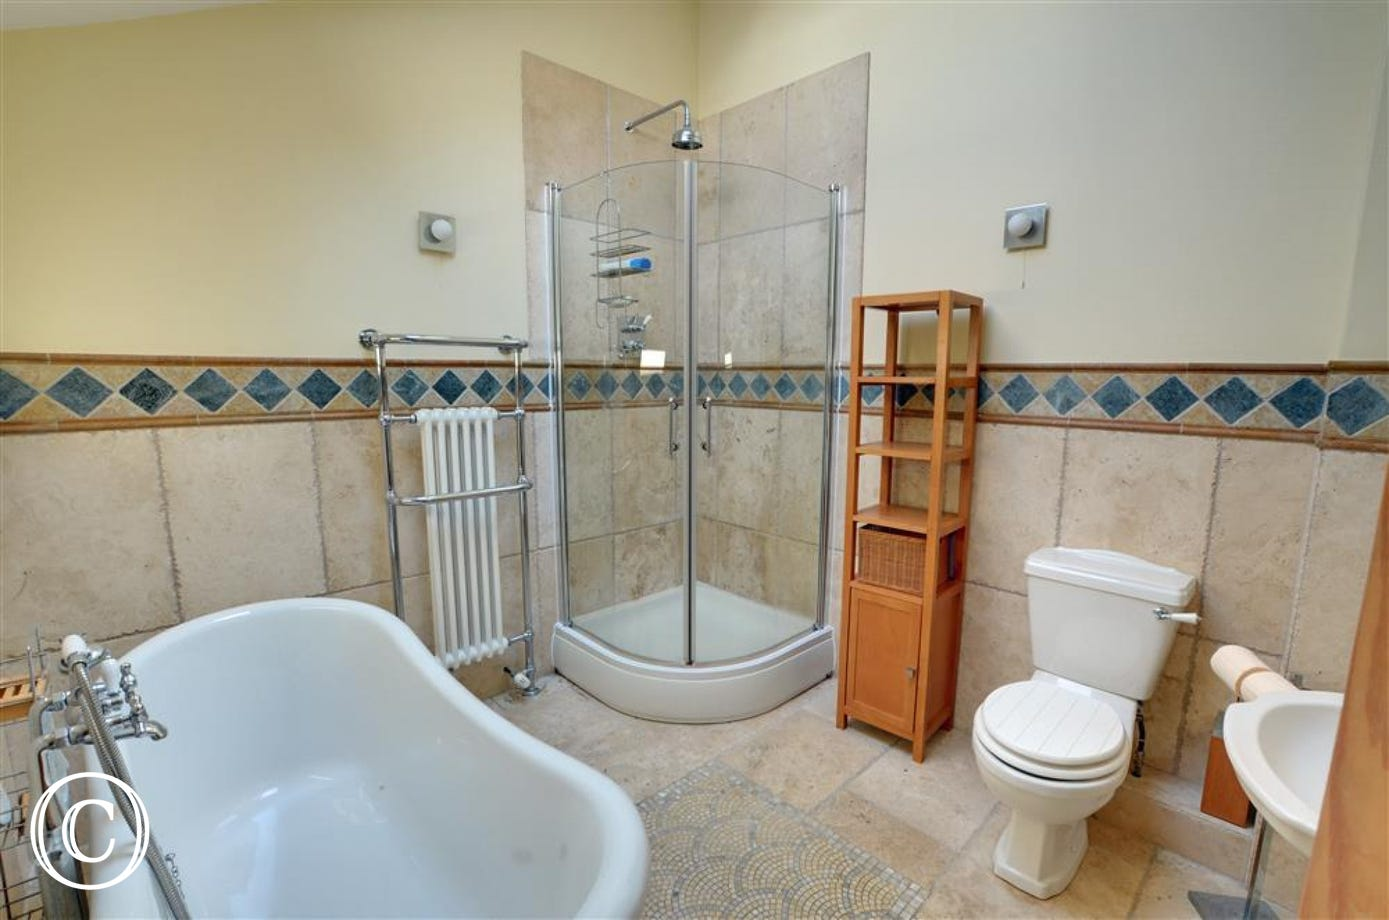 Downstairs luxury bathroom with slipper bath and shower cubicle